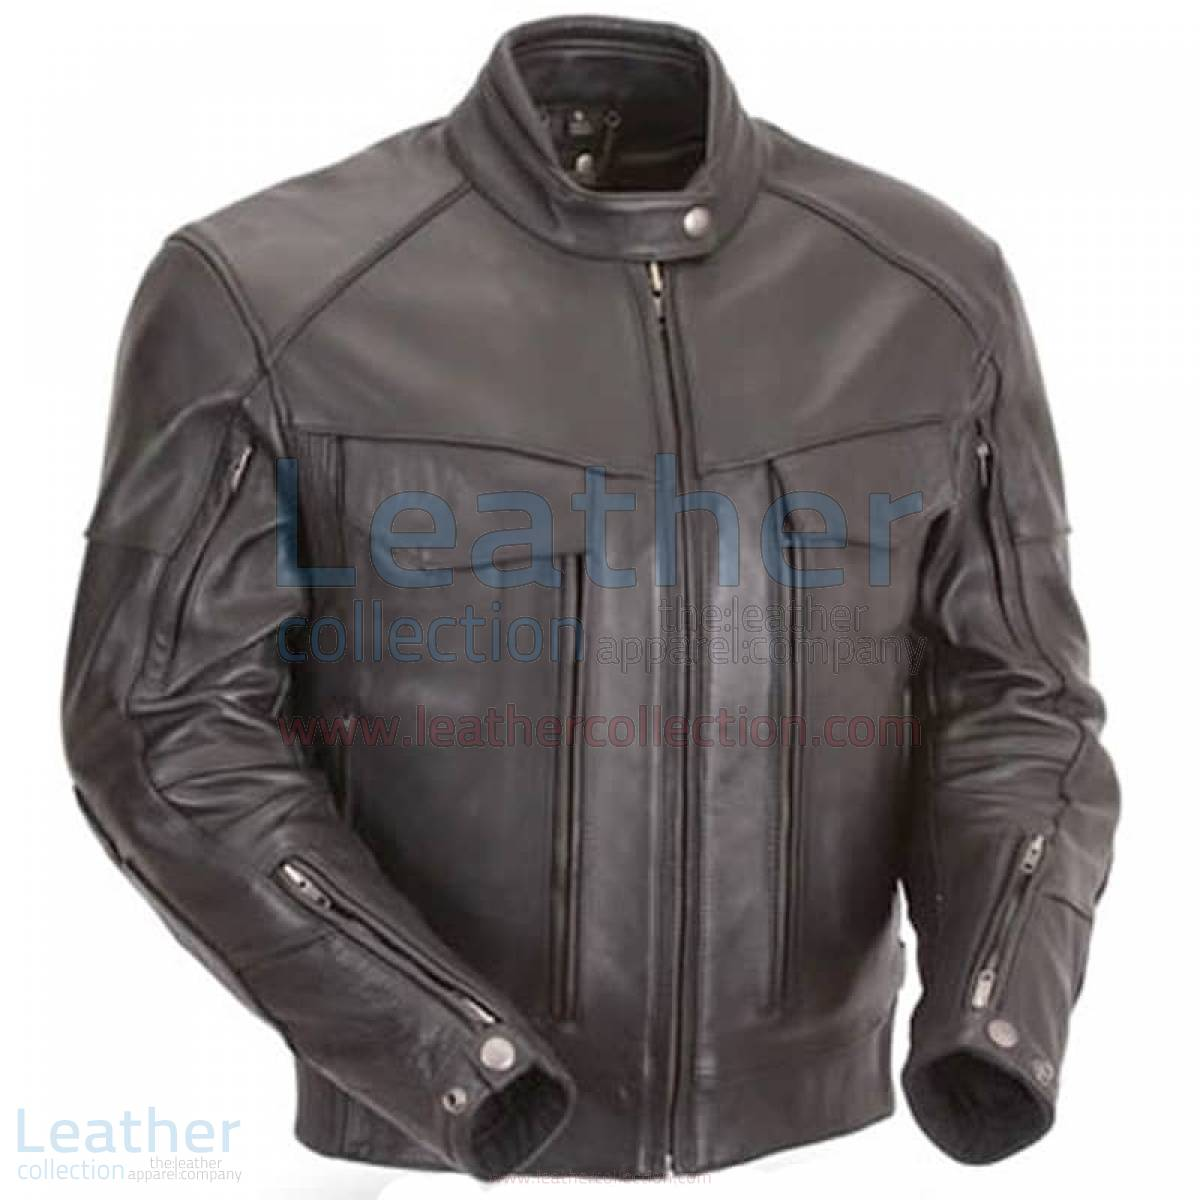 Naked Leather Riding Jacket with Gun Pockets & Side Stretch Panels –  Jacket